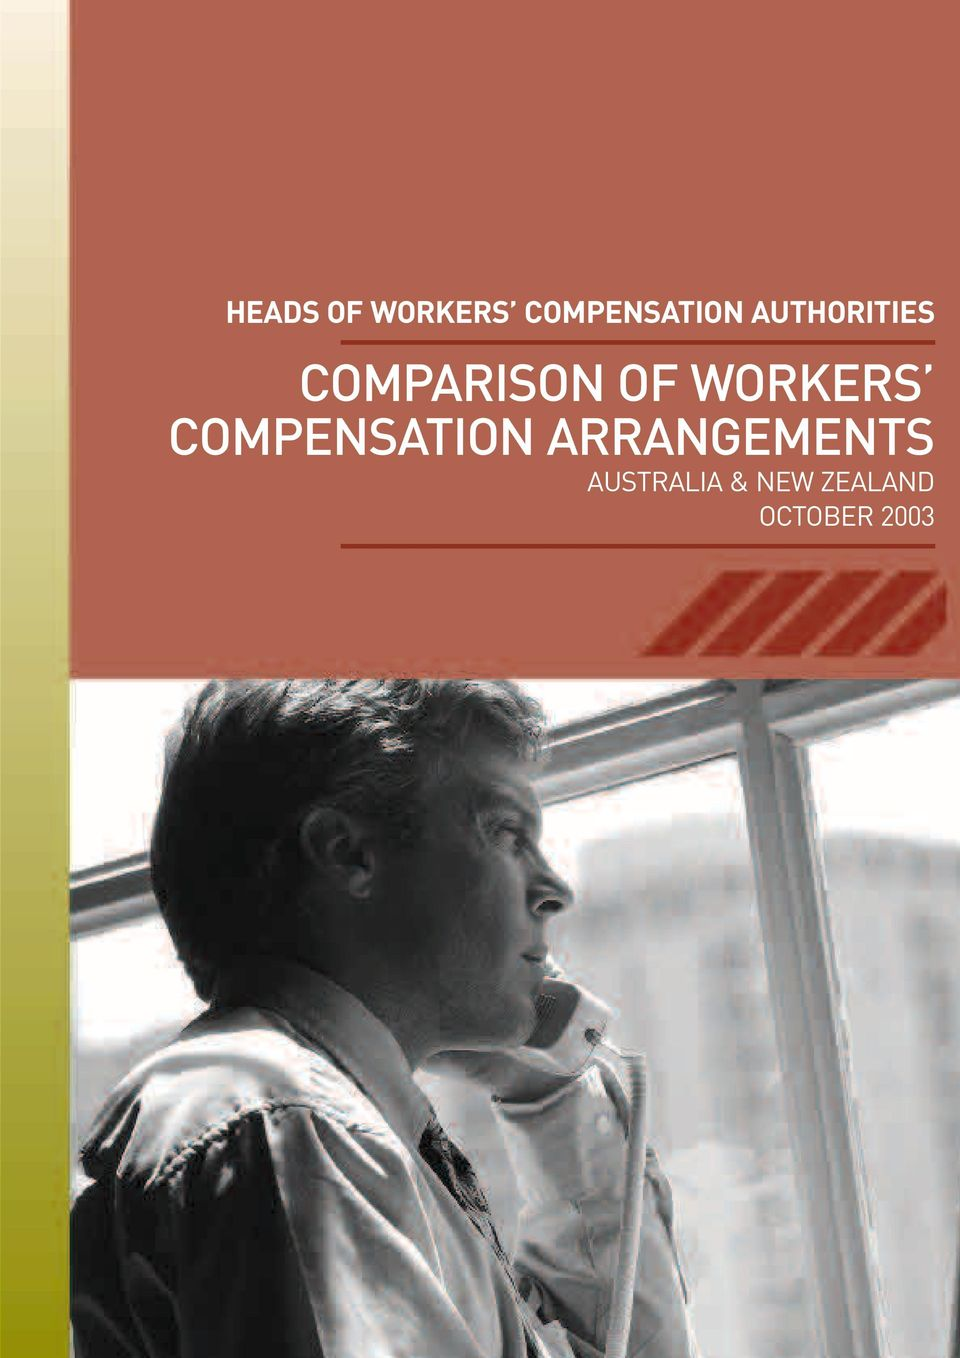 COMPARISON OF WORKERS